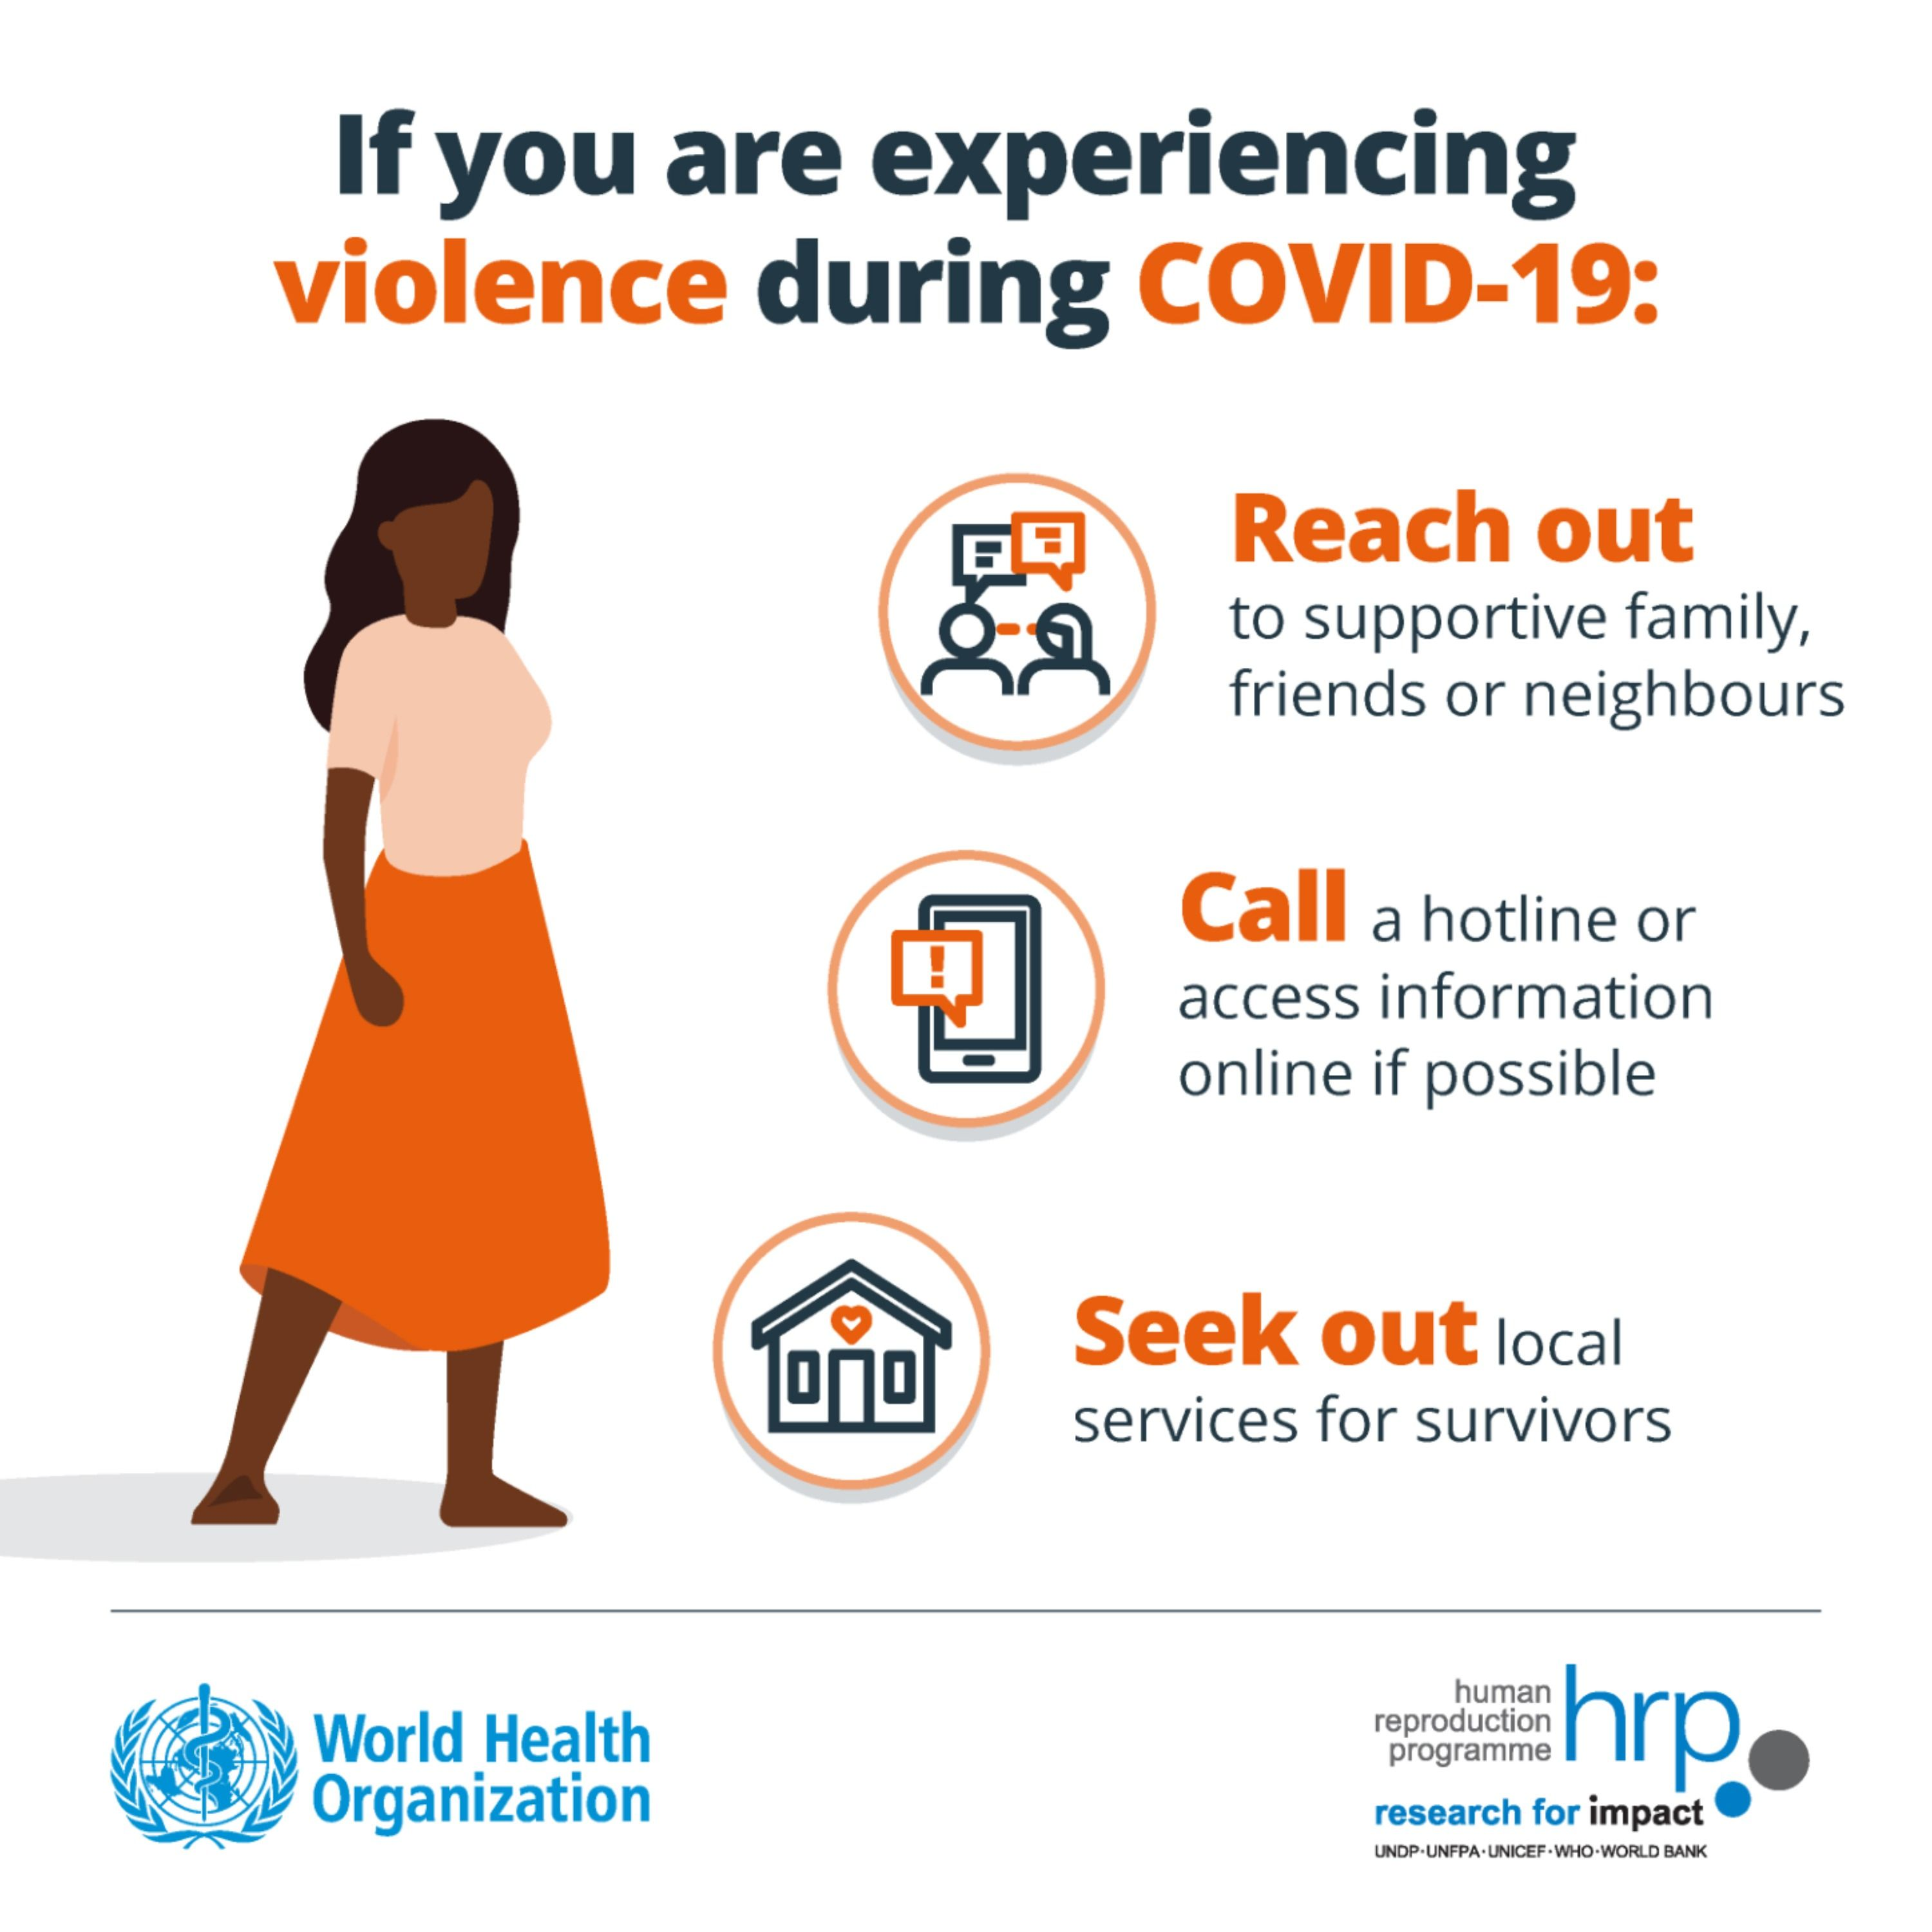 If you are experiencing violence during COVID19 🤝 Reach